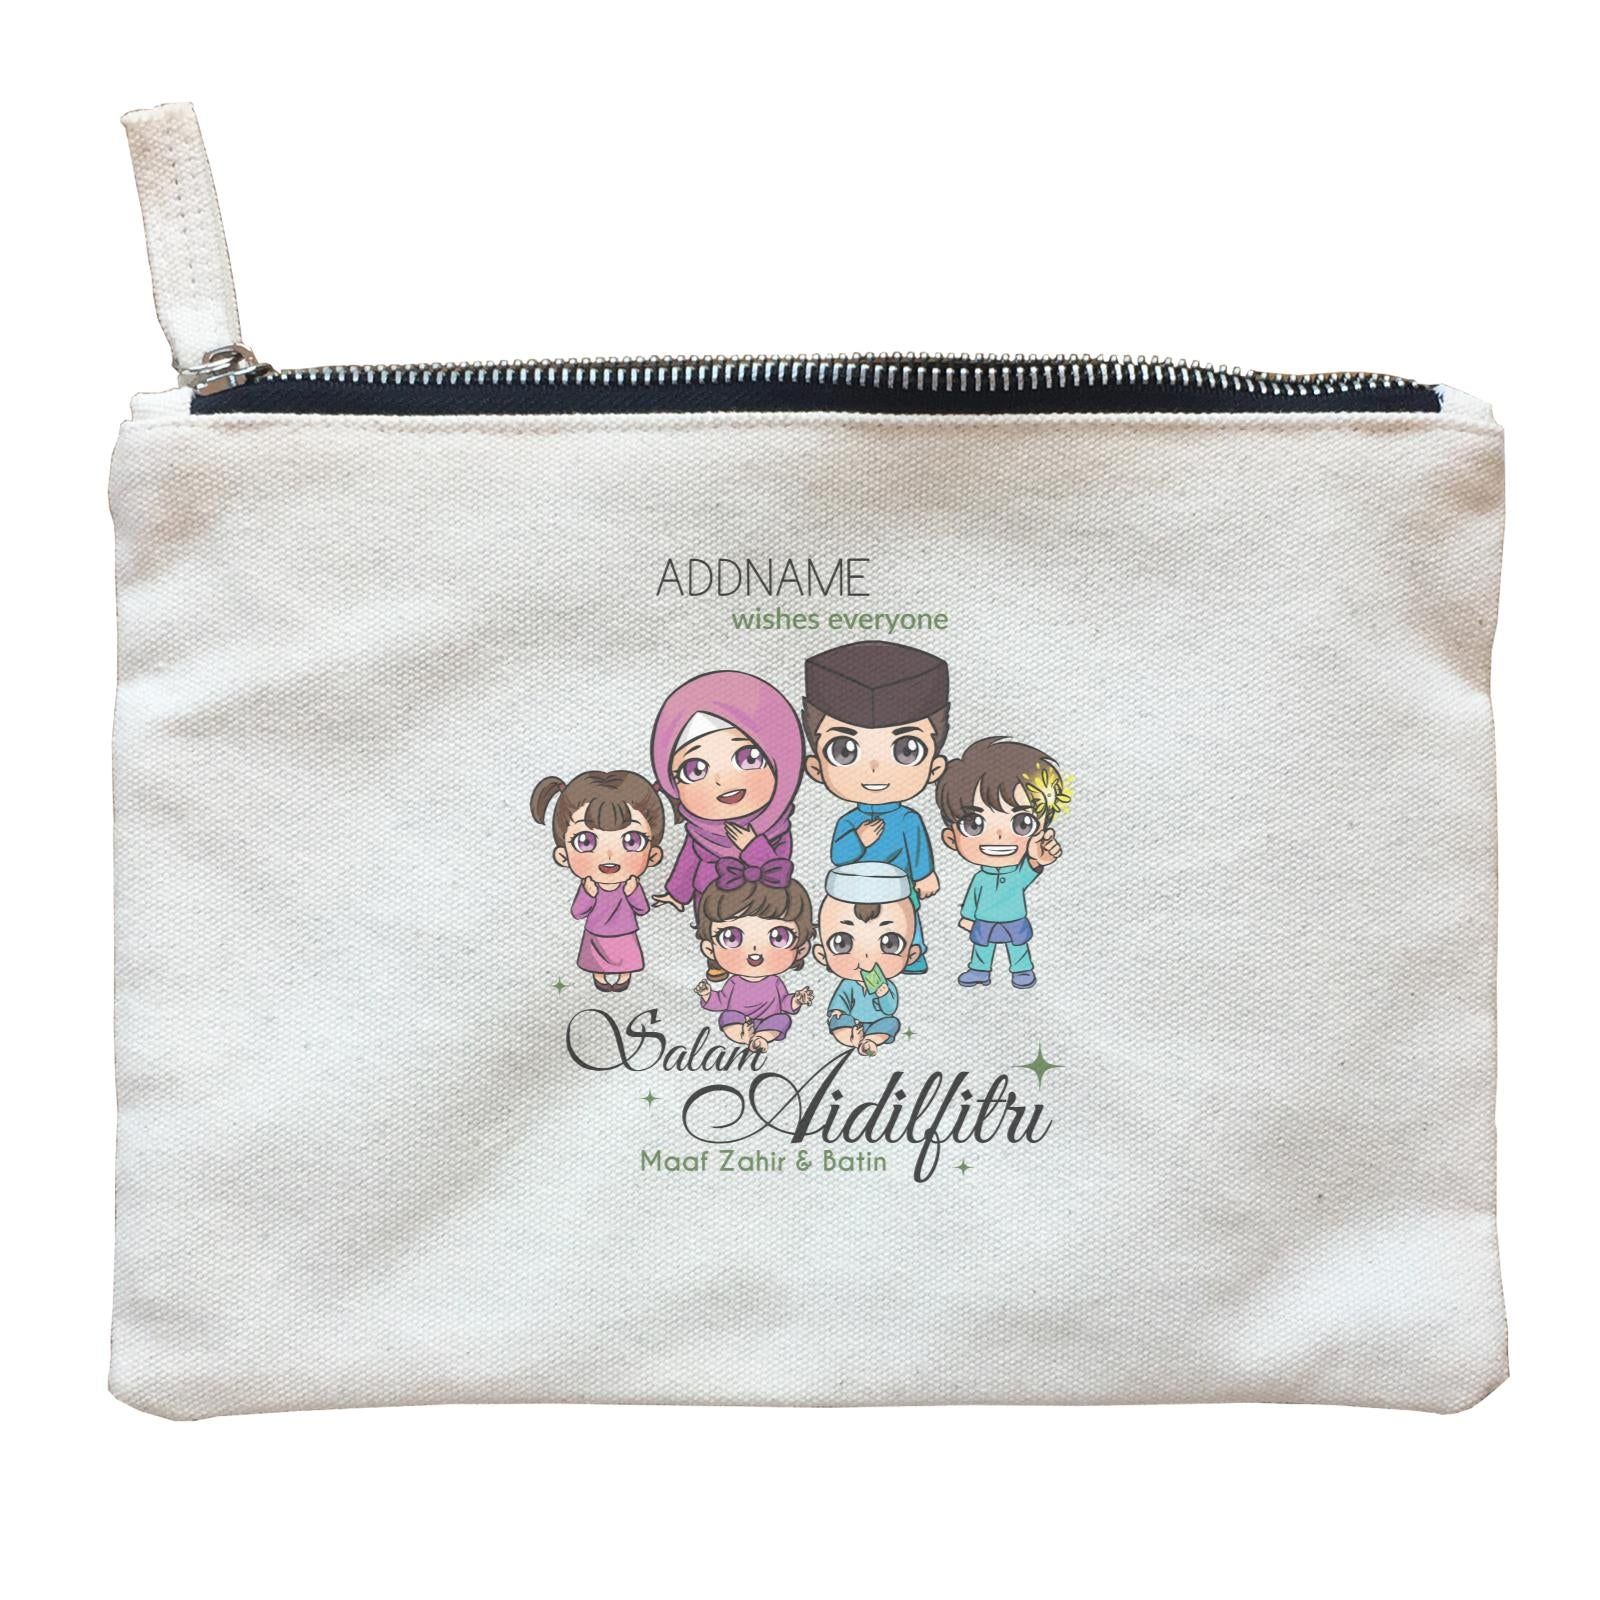 Raya Chibi Family Group Addname Wishes Everyone Salam Aidilfitri Maaf Zahir & Batin Zipper Pouch